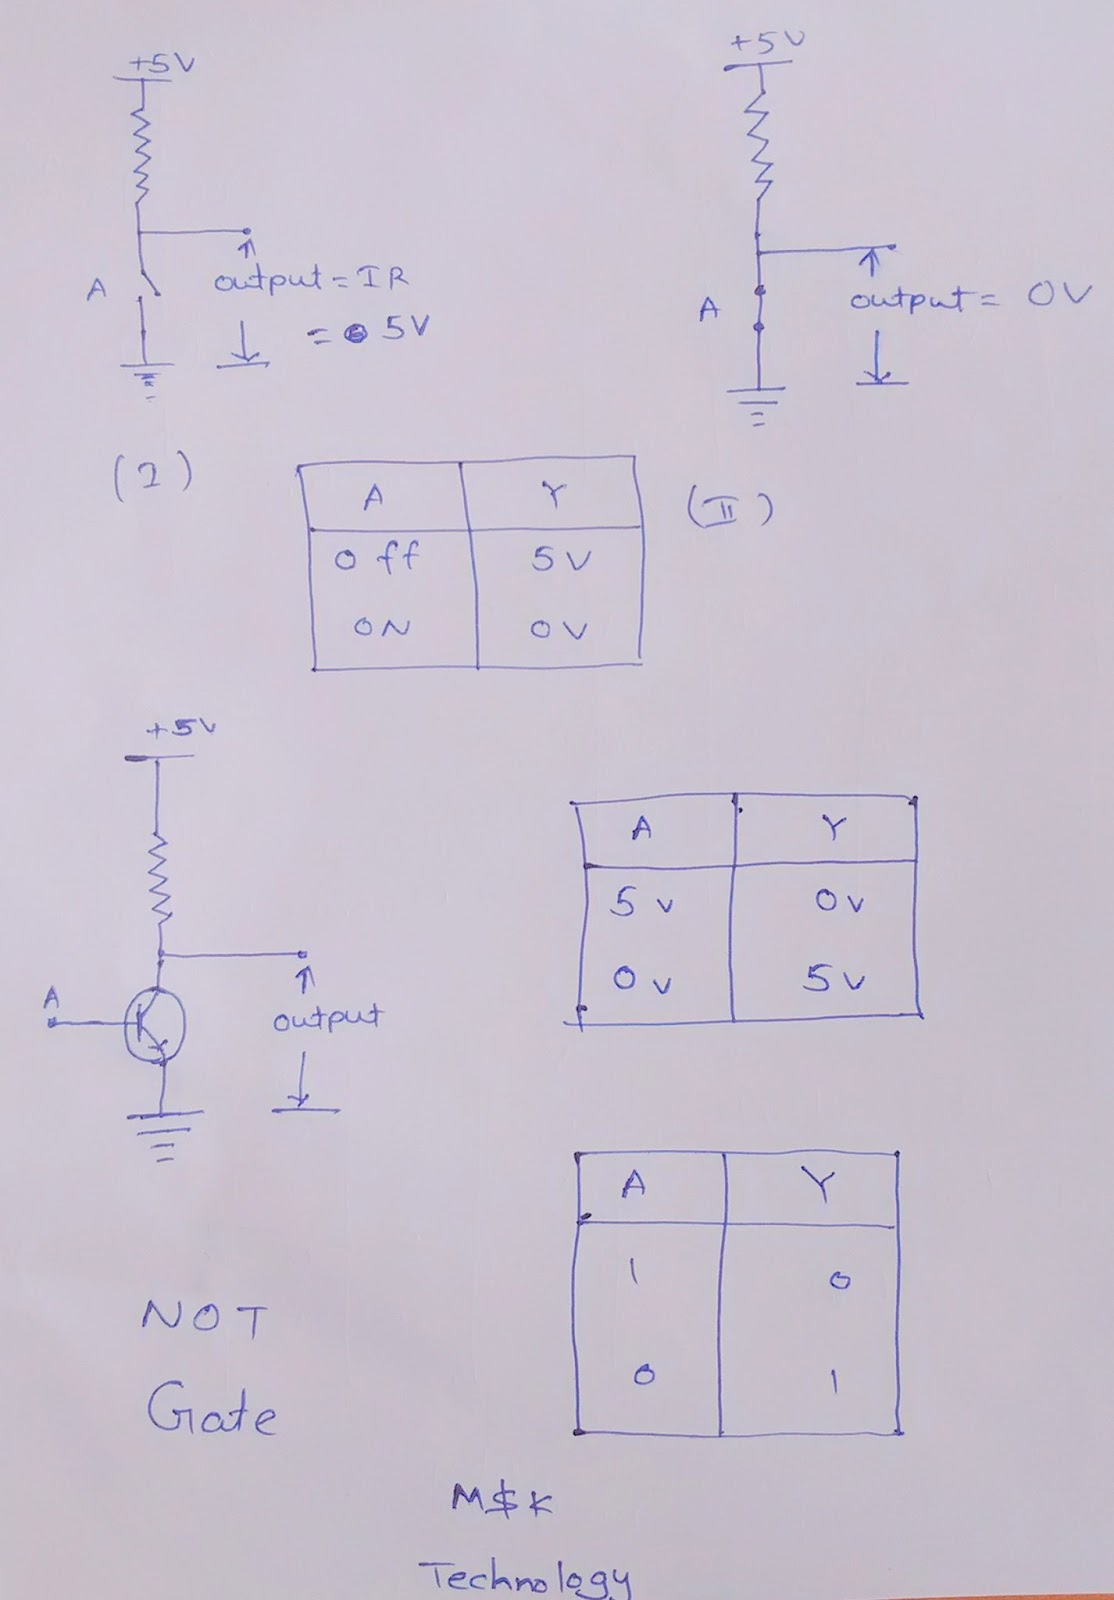 similarly not gate is also made from transistors fig 3 shows the circuit for a not gate using a switch  [ 1114 x 1600 Pixel ]